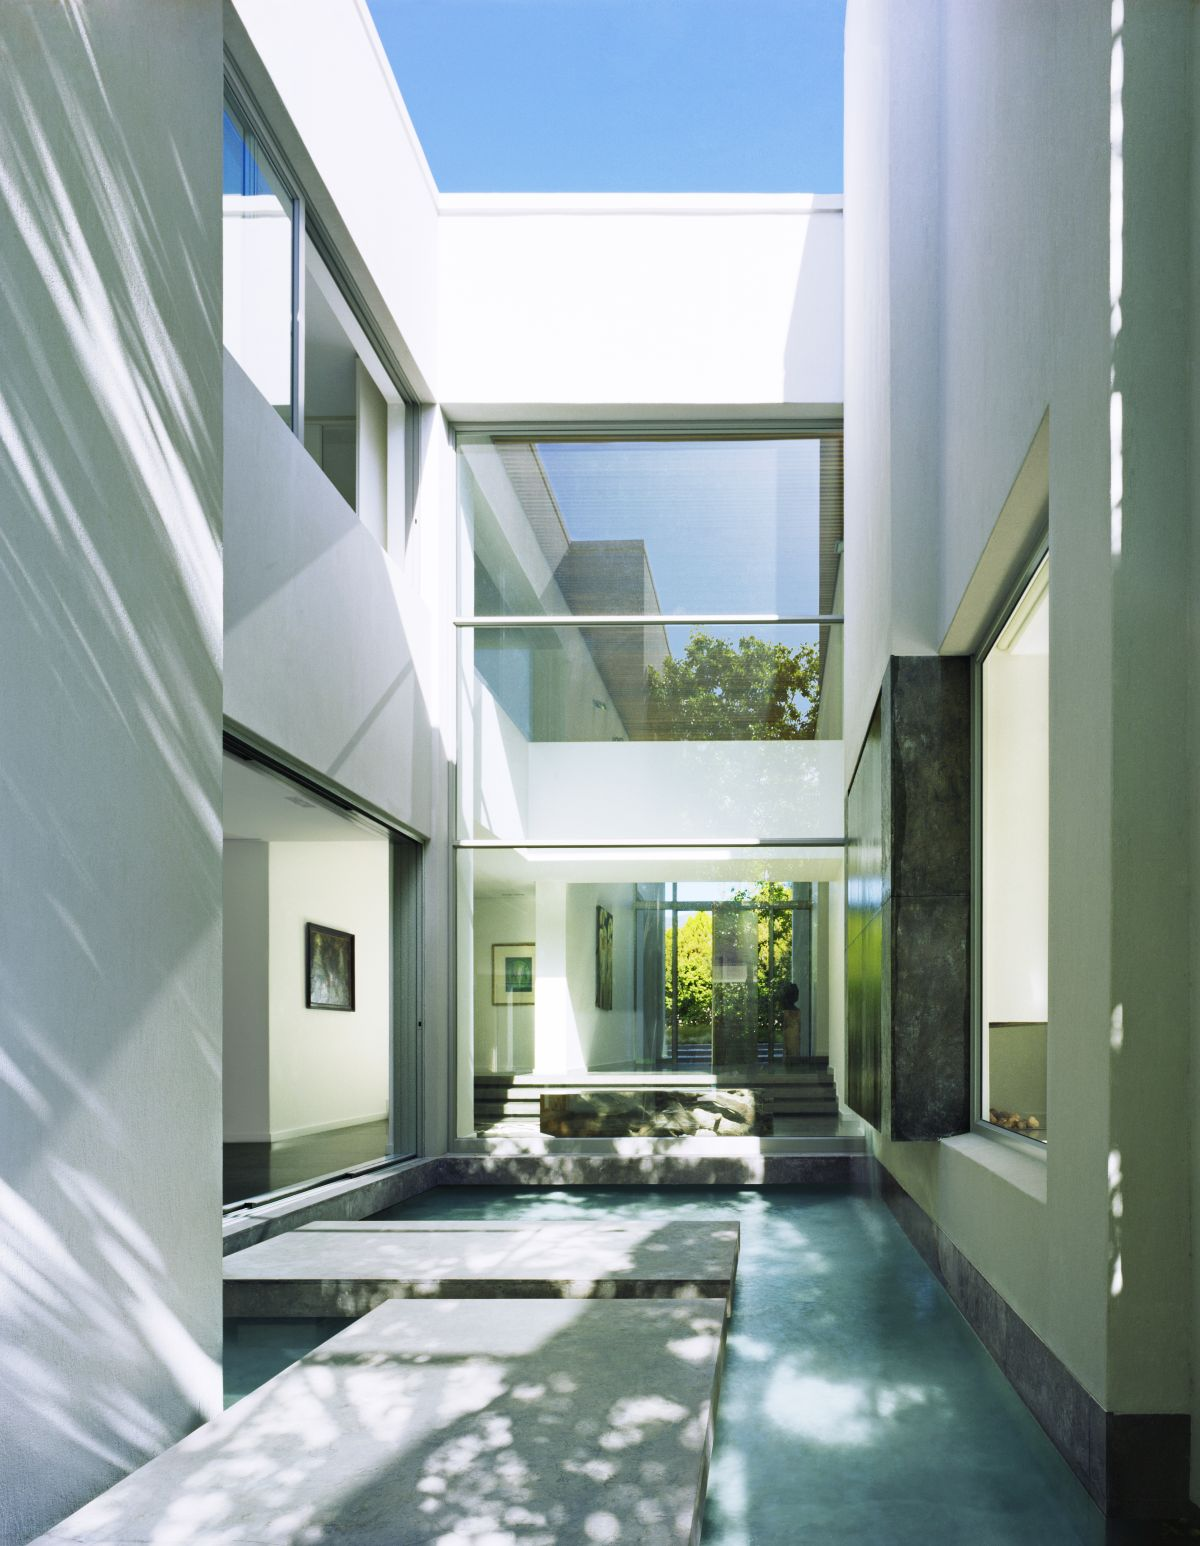 Honed stone floors and wall slabs makes the indoor-outdoor transition seamless